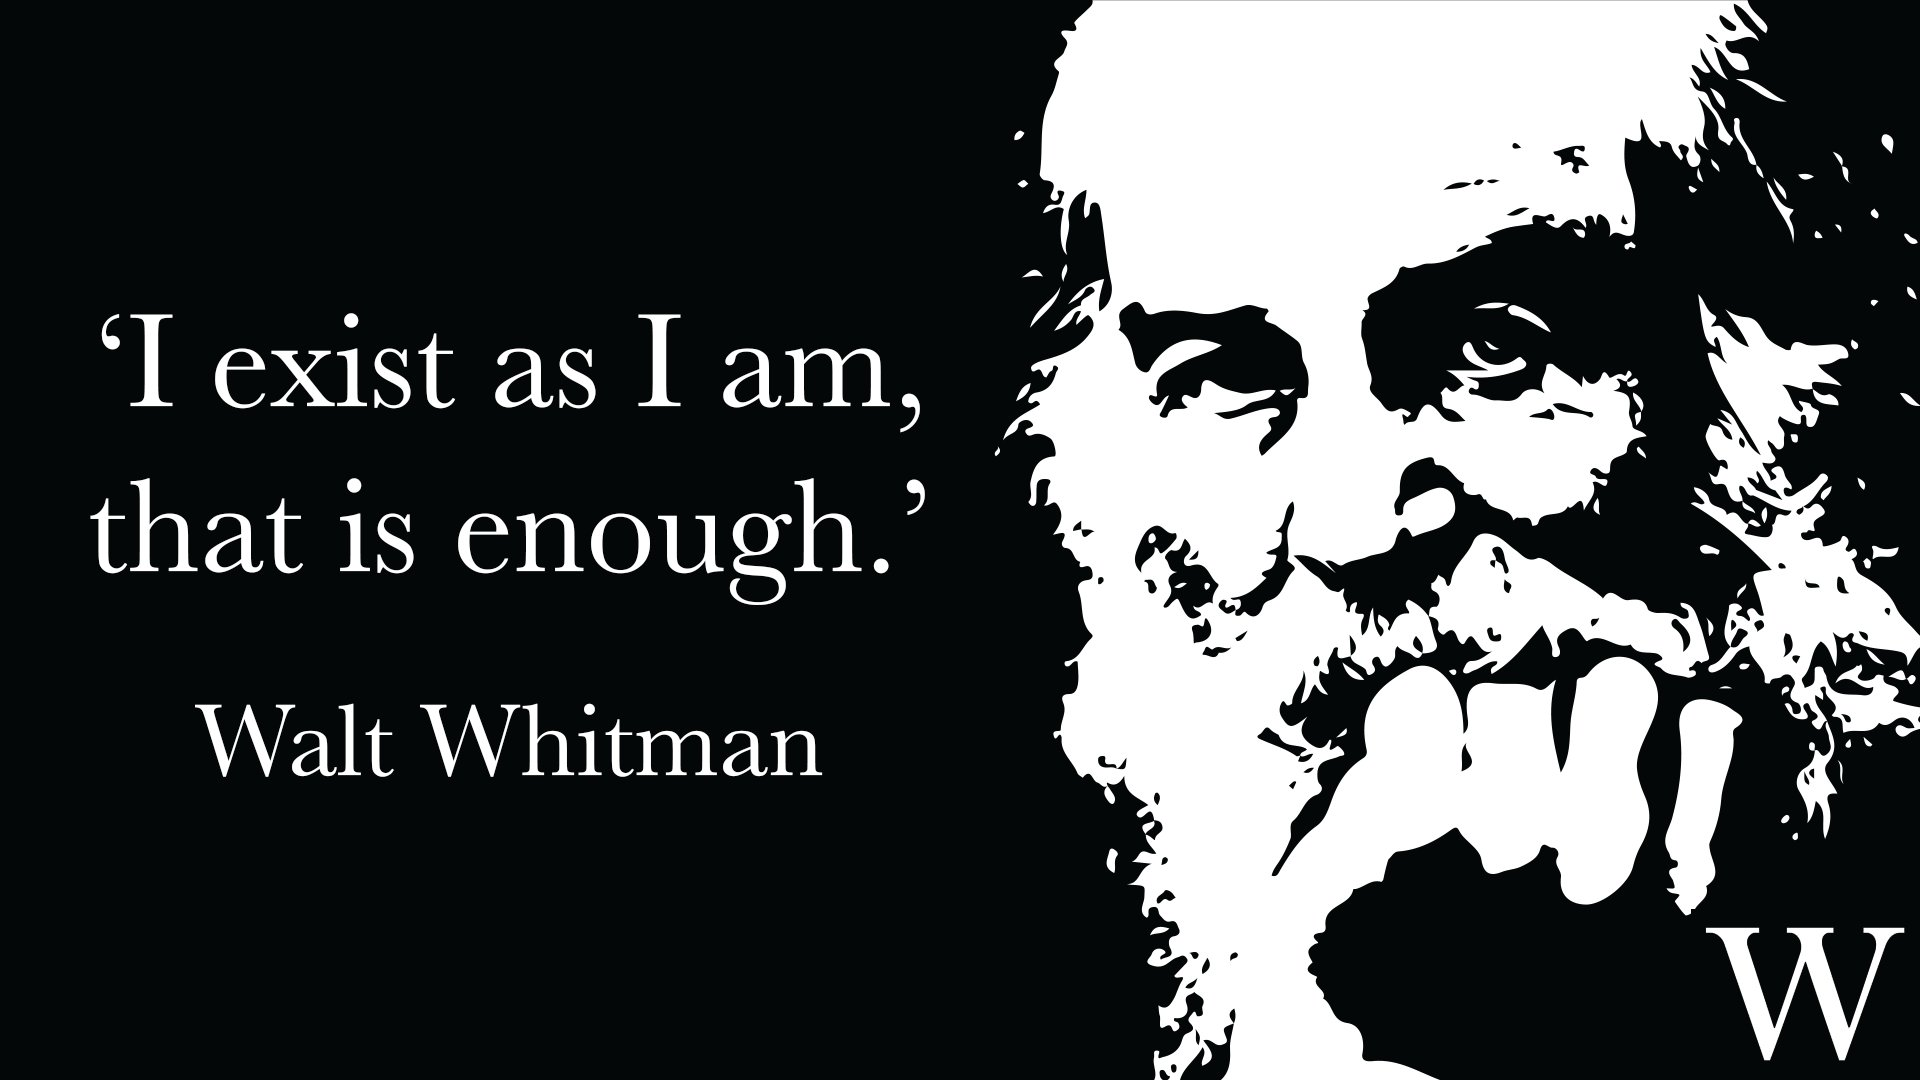 Reloaded twaddle – RT @Waterstones: 'I exist as I am, that is enough.' - Walt Whitman, born #OnThis...